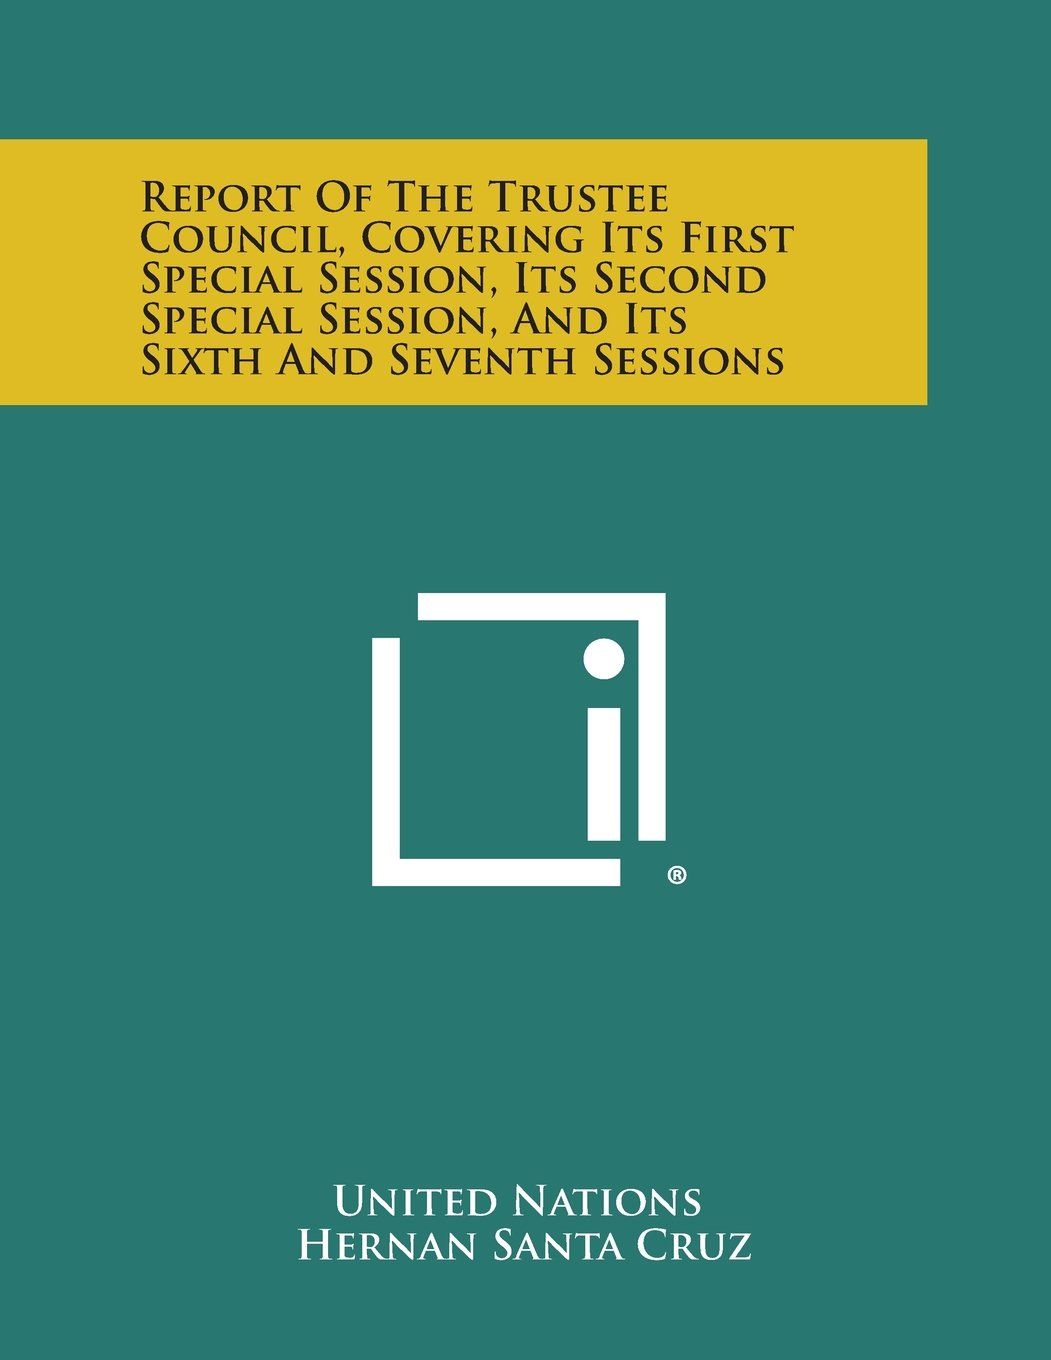 Download Report of the Trustee Council, Covering Its First Special Session, Its Second Special Session, and Its Sixth and Seventh Sessions ebook